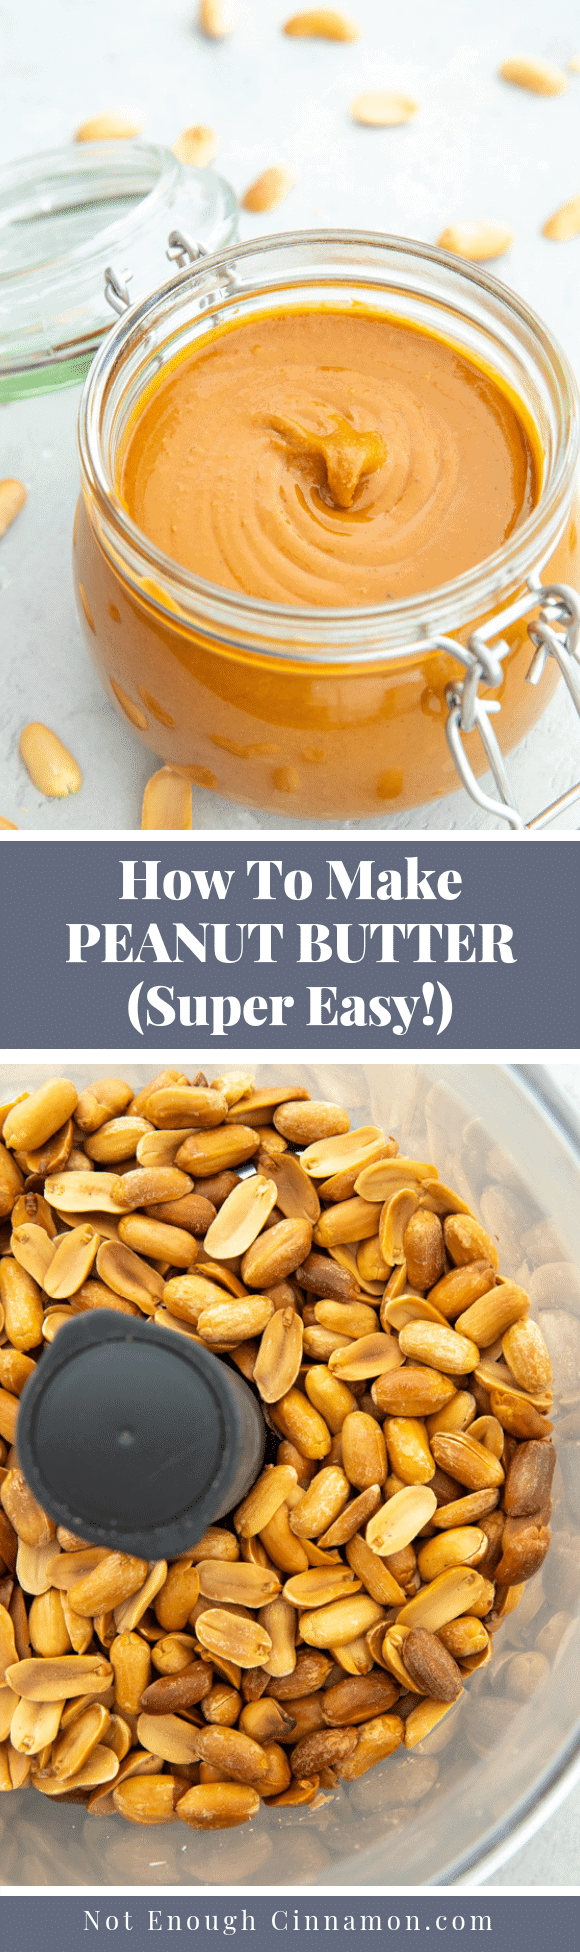 Learn how to make peanut butter at home from scratch with this easy step-by-step tutorial. You only need peanuts and a food processor. No oil, no sugar, no nasties! Naturally vegan, low carb and gluten free.